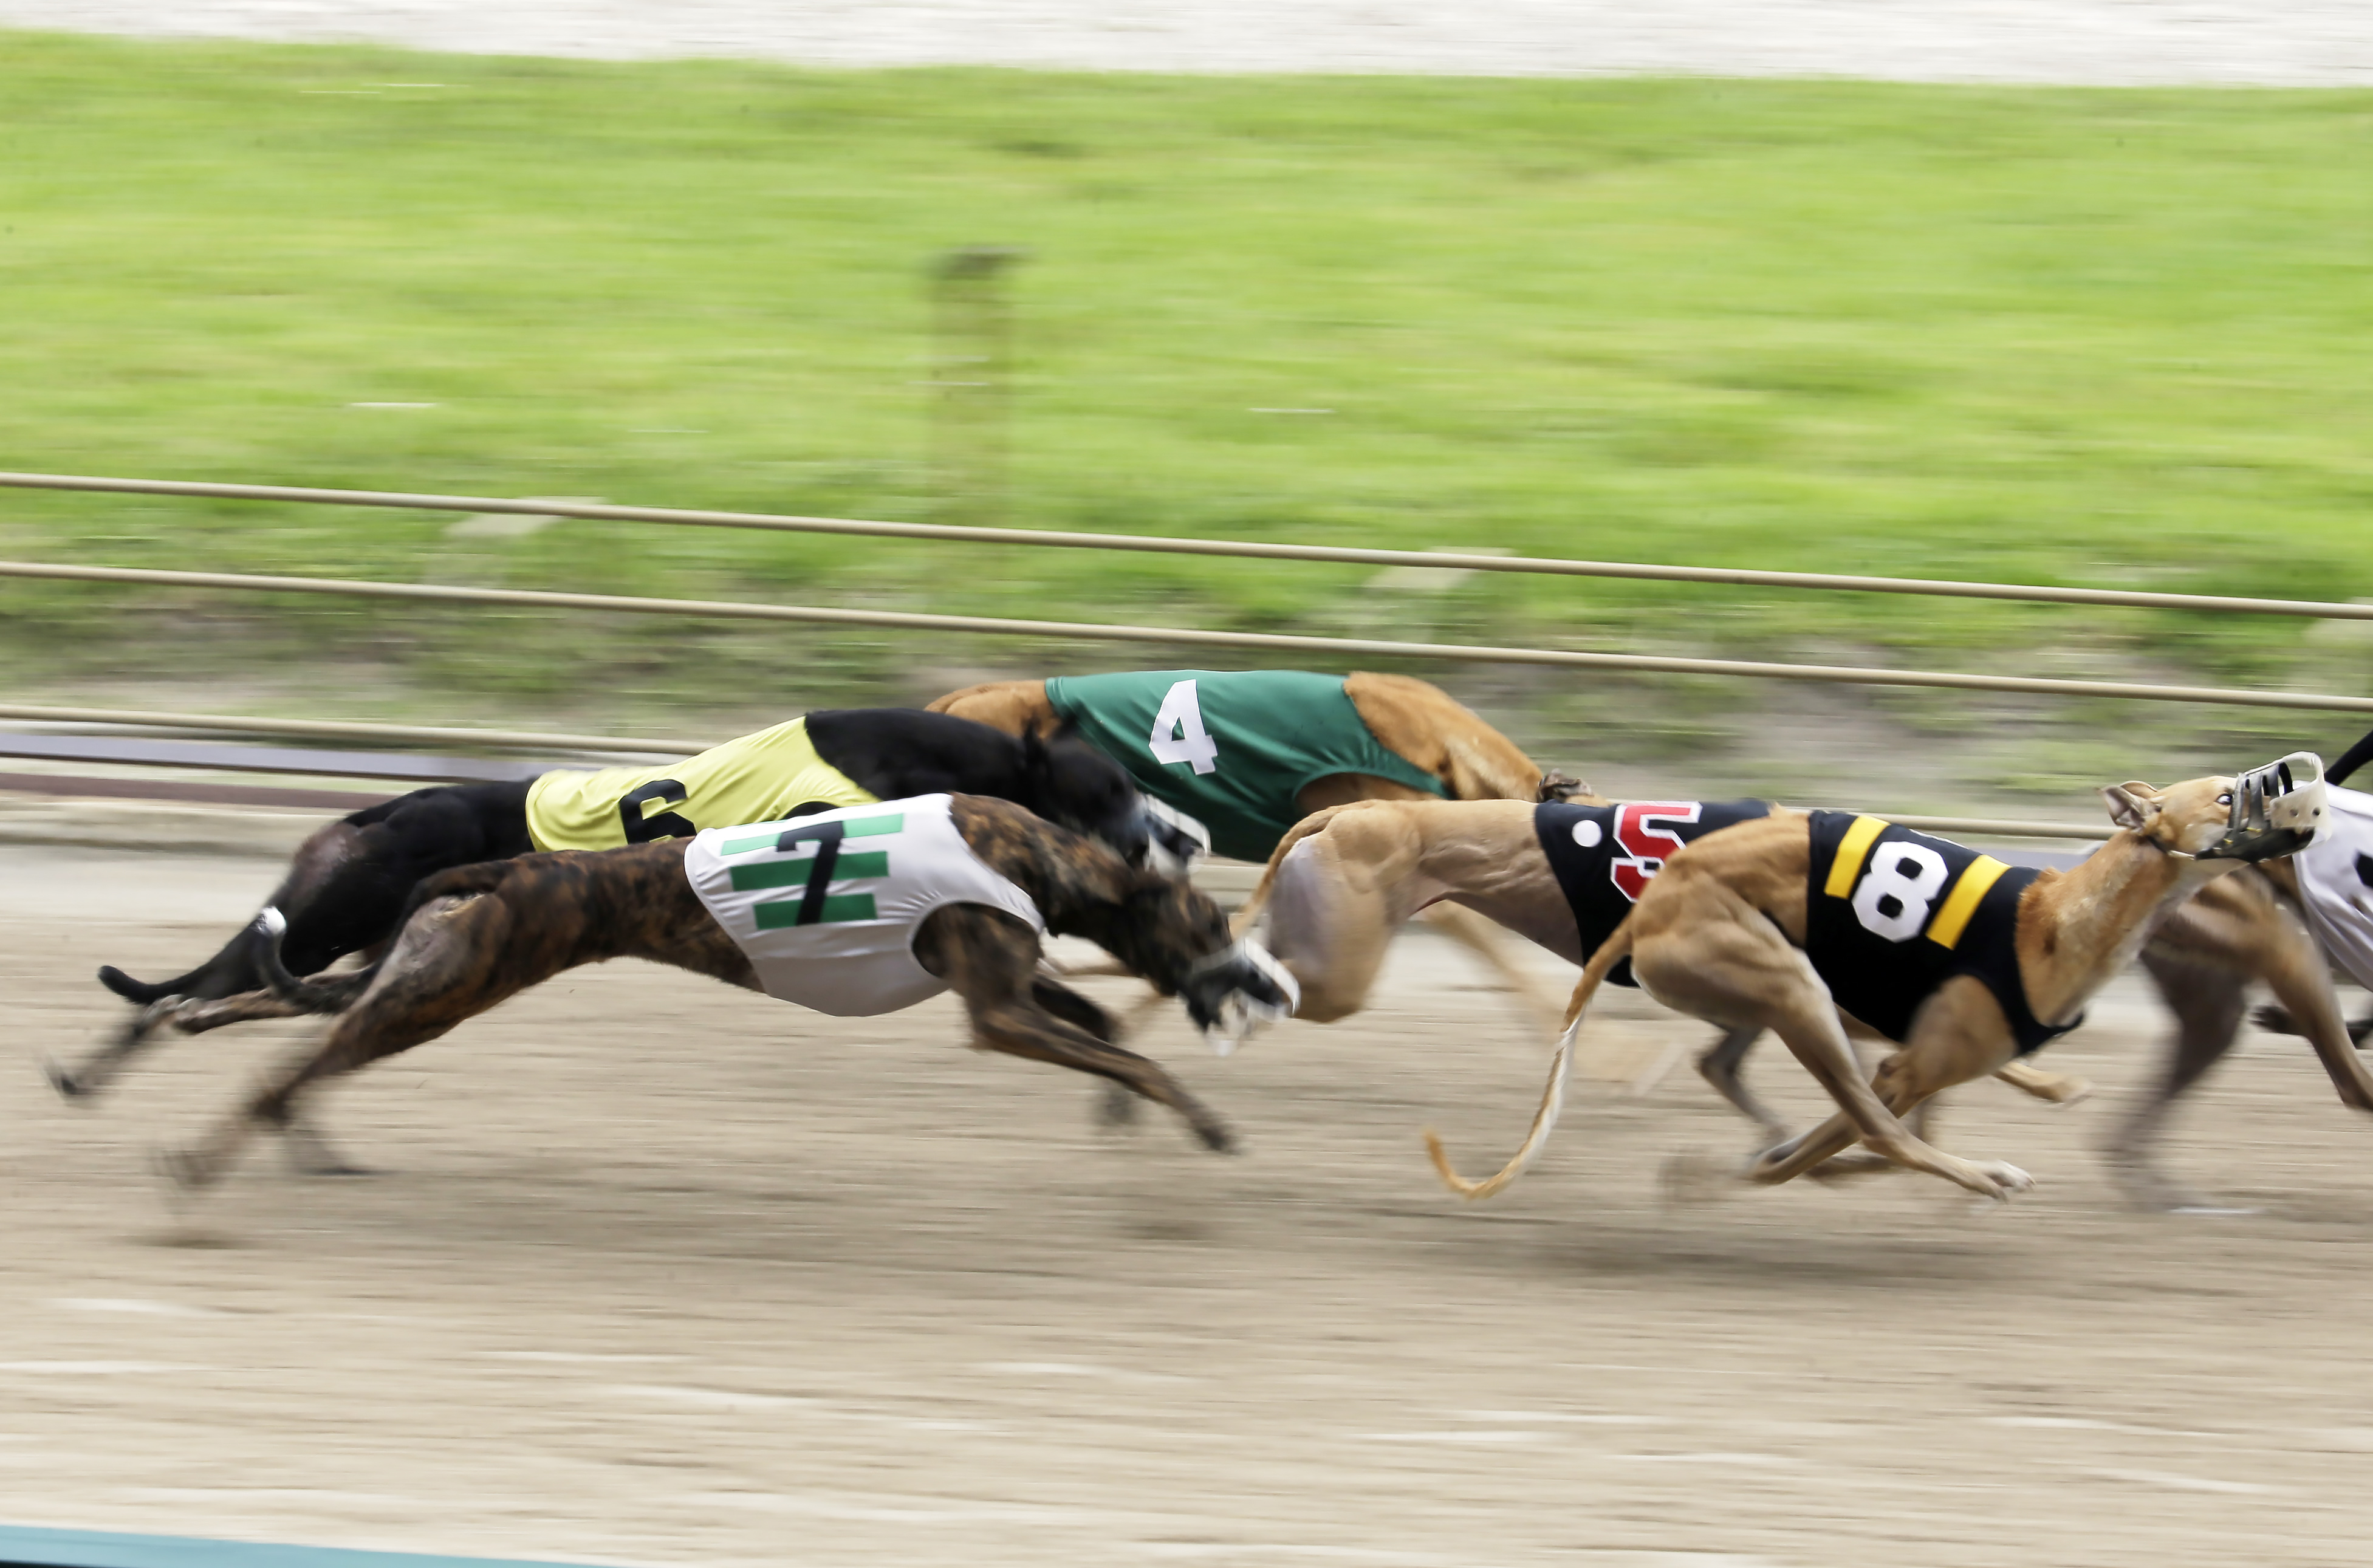 Dog Racings Decline Greyhounds race at the Flagler Dog Track in Miami in 2014. One type of canine influenza was first identified in greyhounds 13 years ago.